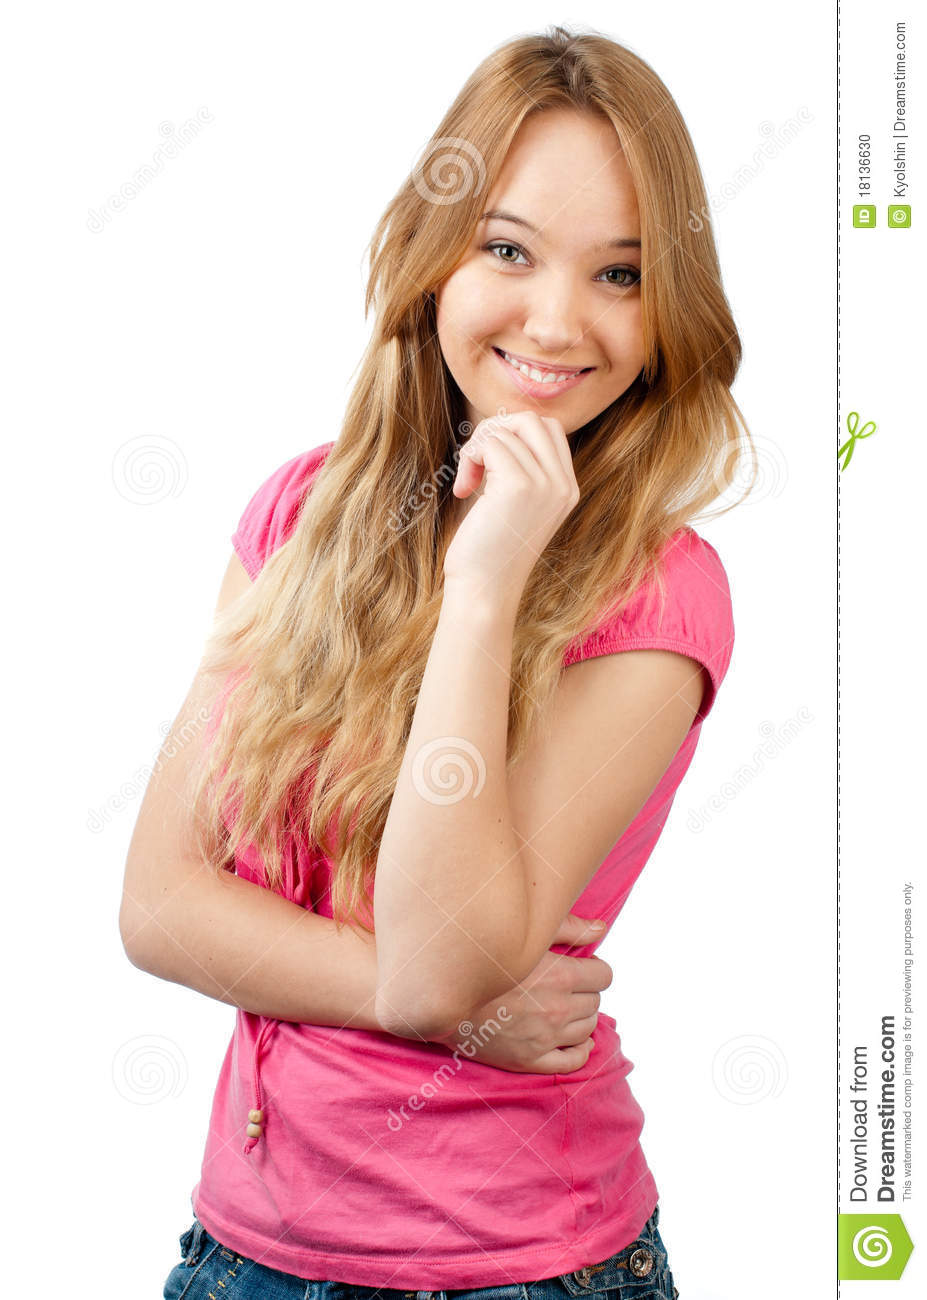 a teenage girl A teenager, or teen in the 21st century, the average age at which children, especially girls, reach puberty is lower compared to the 19th century.